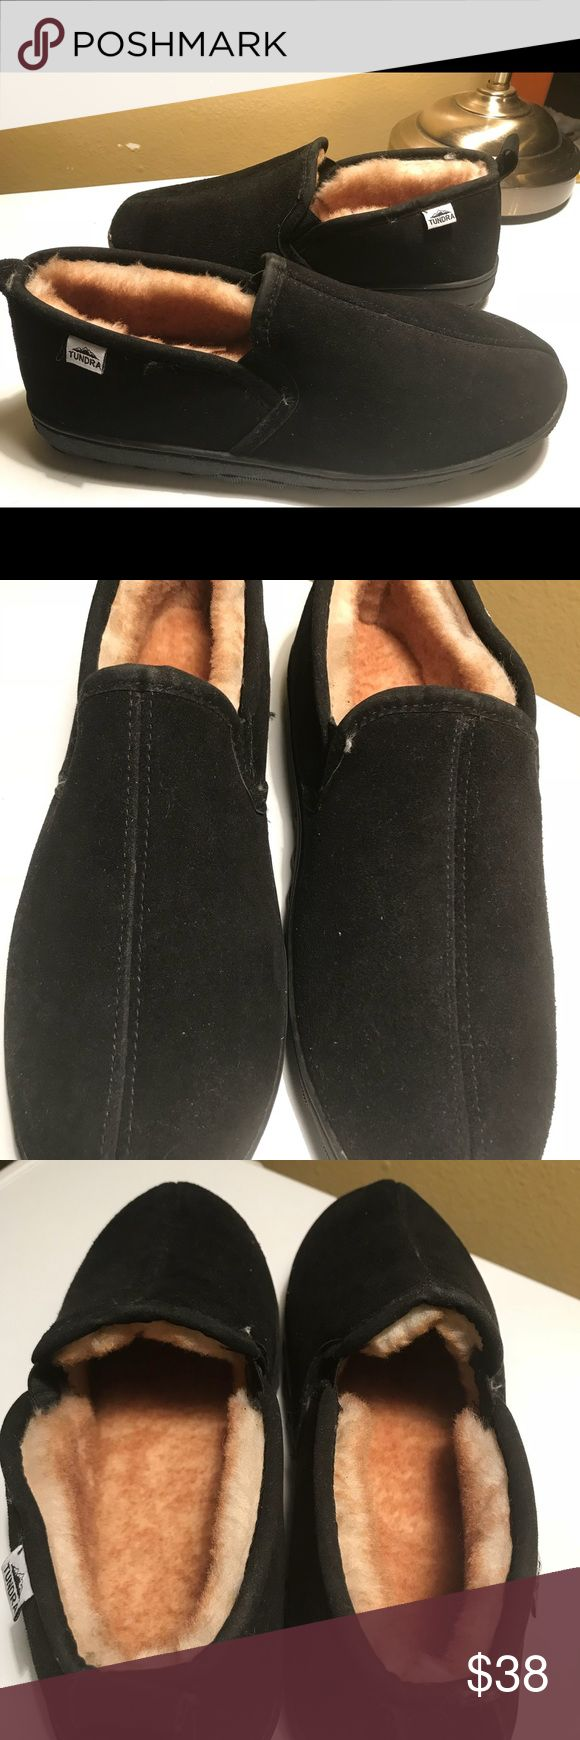 Tundra Black Suede men's slippers New Size 11M New very comfortable slippers Tundra Shoes